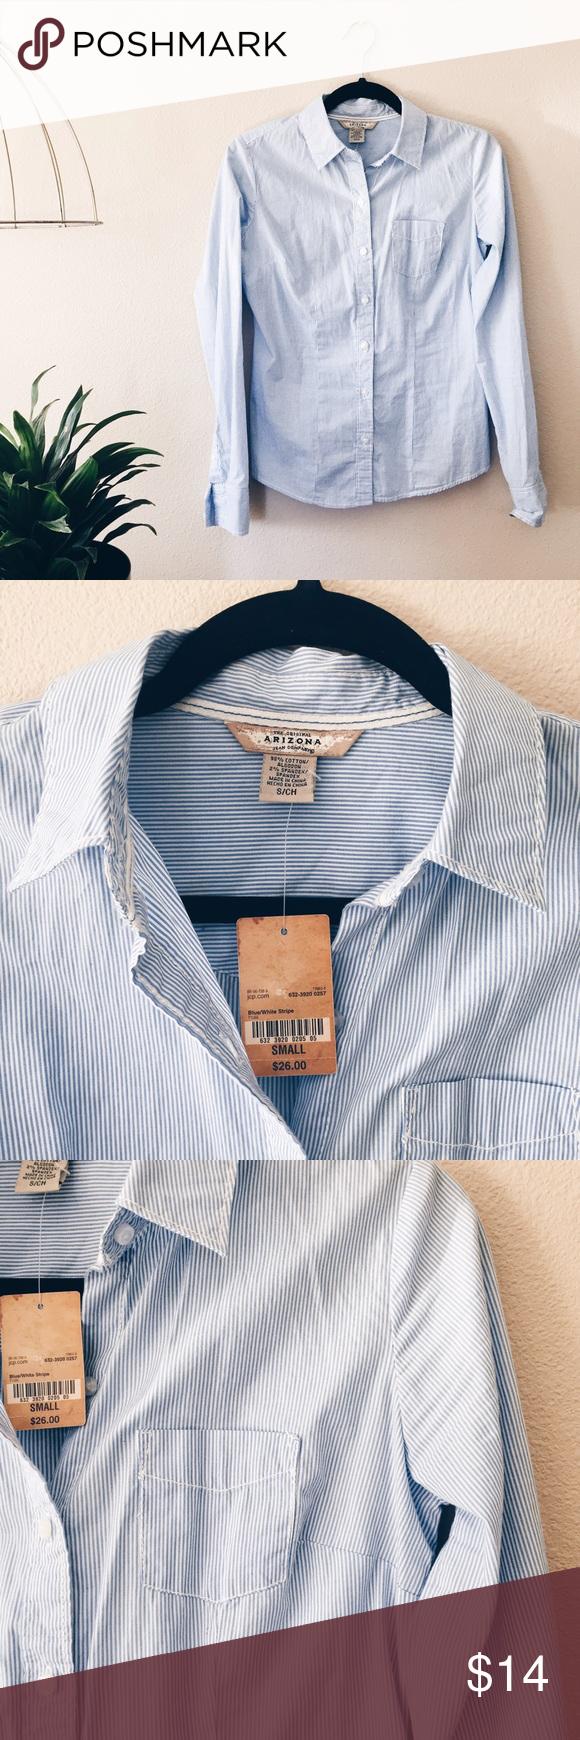 ▪️SALE▪️Fitted button-up top Thin blue and white stripes grace this fitted button-up top- perfect for work or wear un-buttoned for a casual look!  Brand new with tags from JC Penny! Arizona Jean Company Tops Button Down Shirts